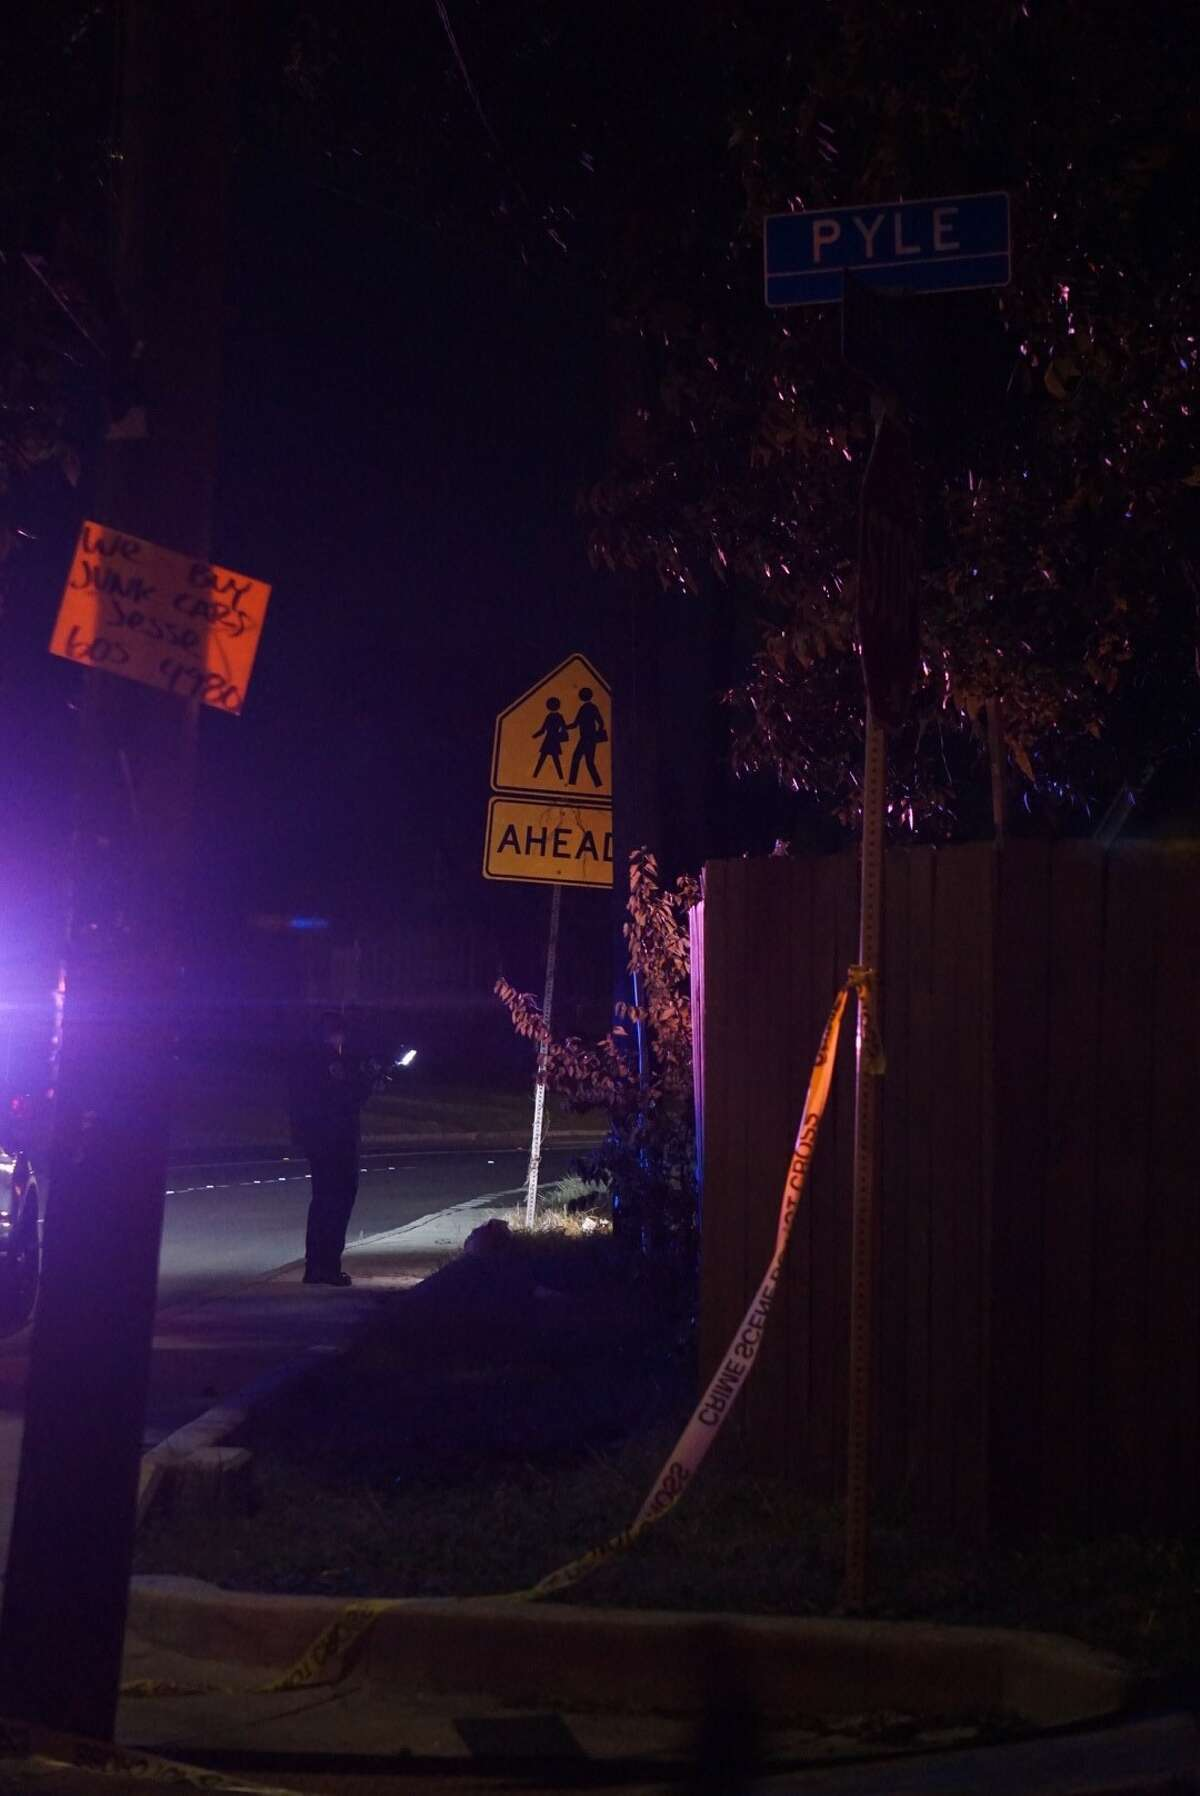 Police said a woman was struck by at least one bullet 6:30 p.m. Tuesday Nov. 20, 2018 near Pecan Valley Drive and Pyle Street.